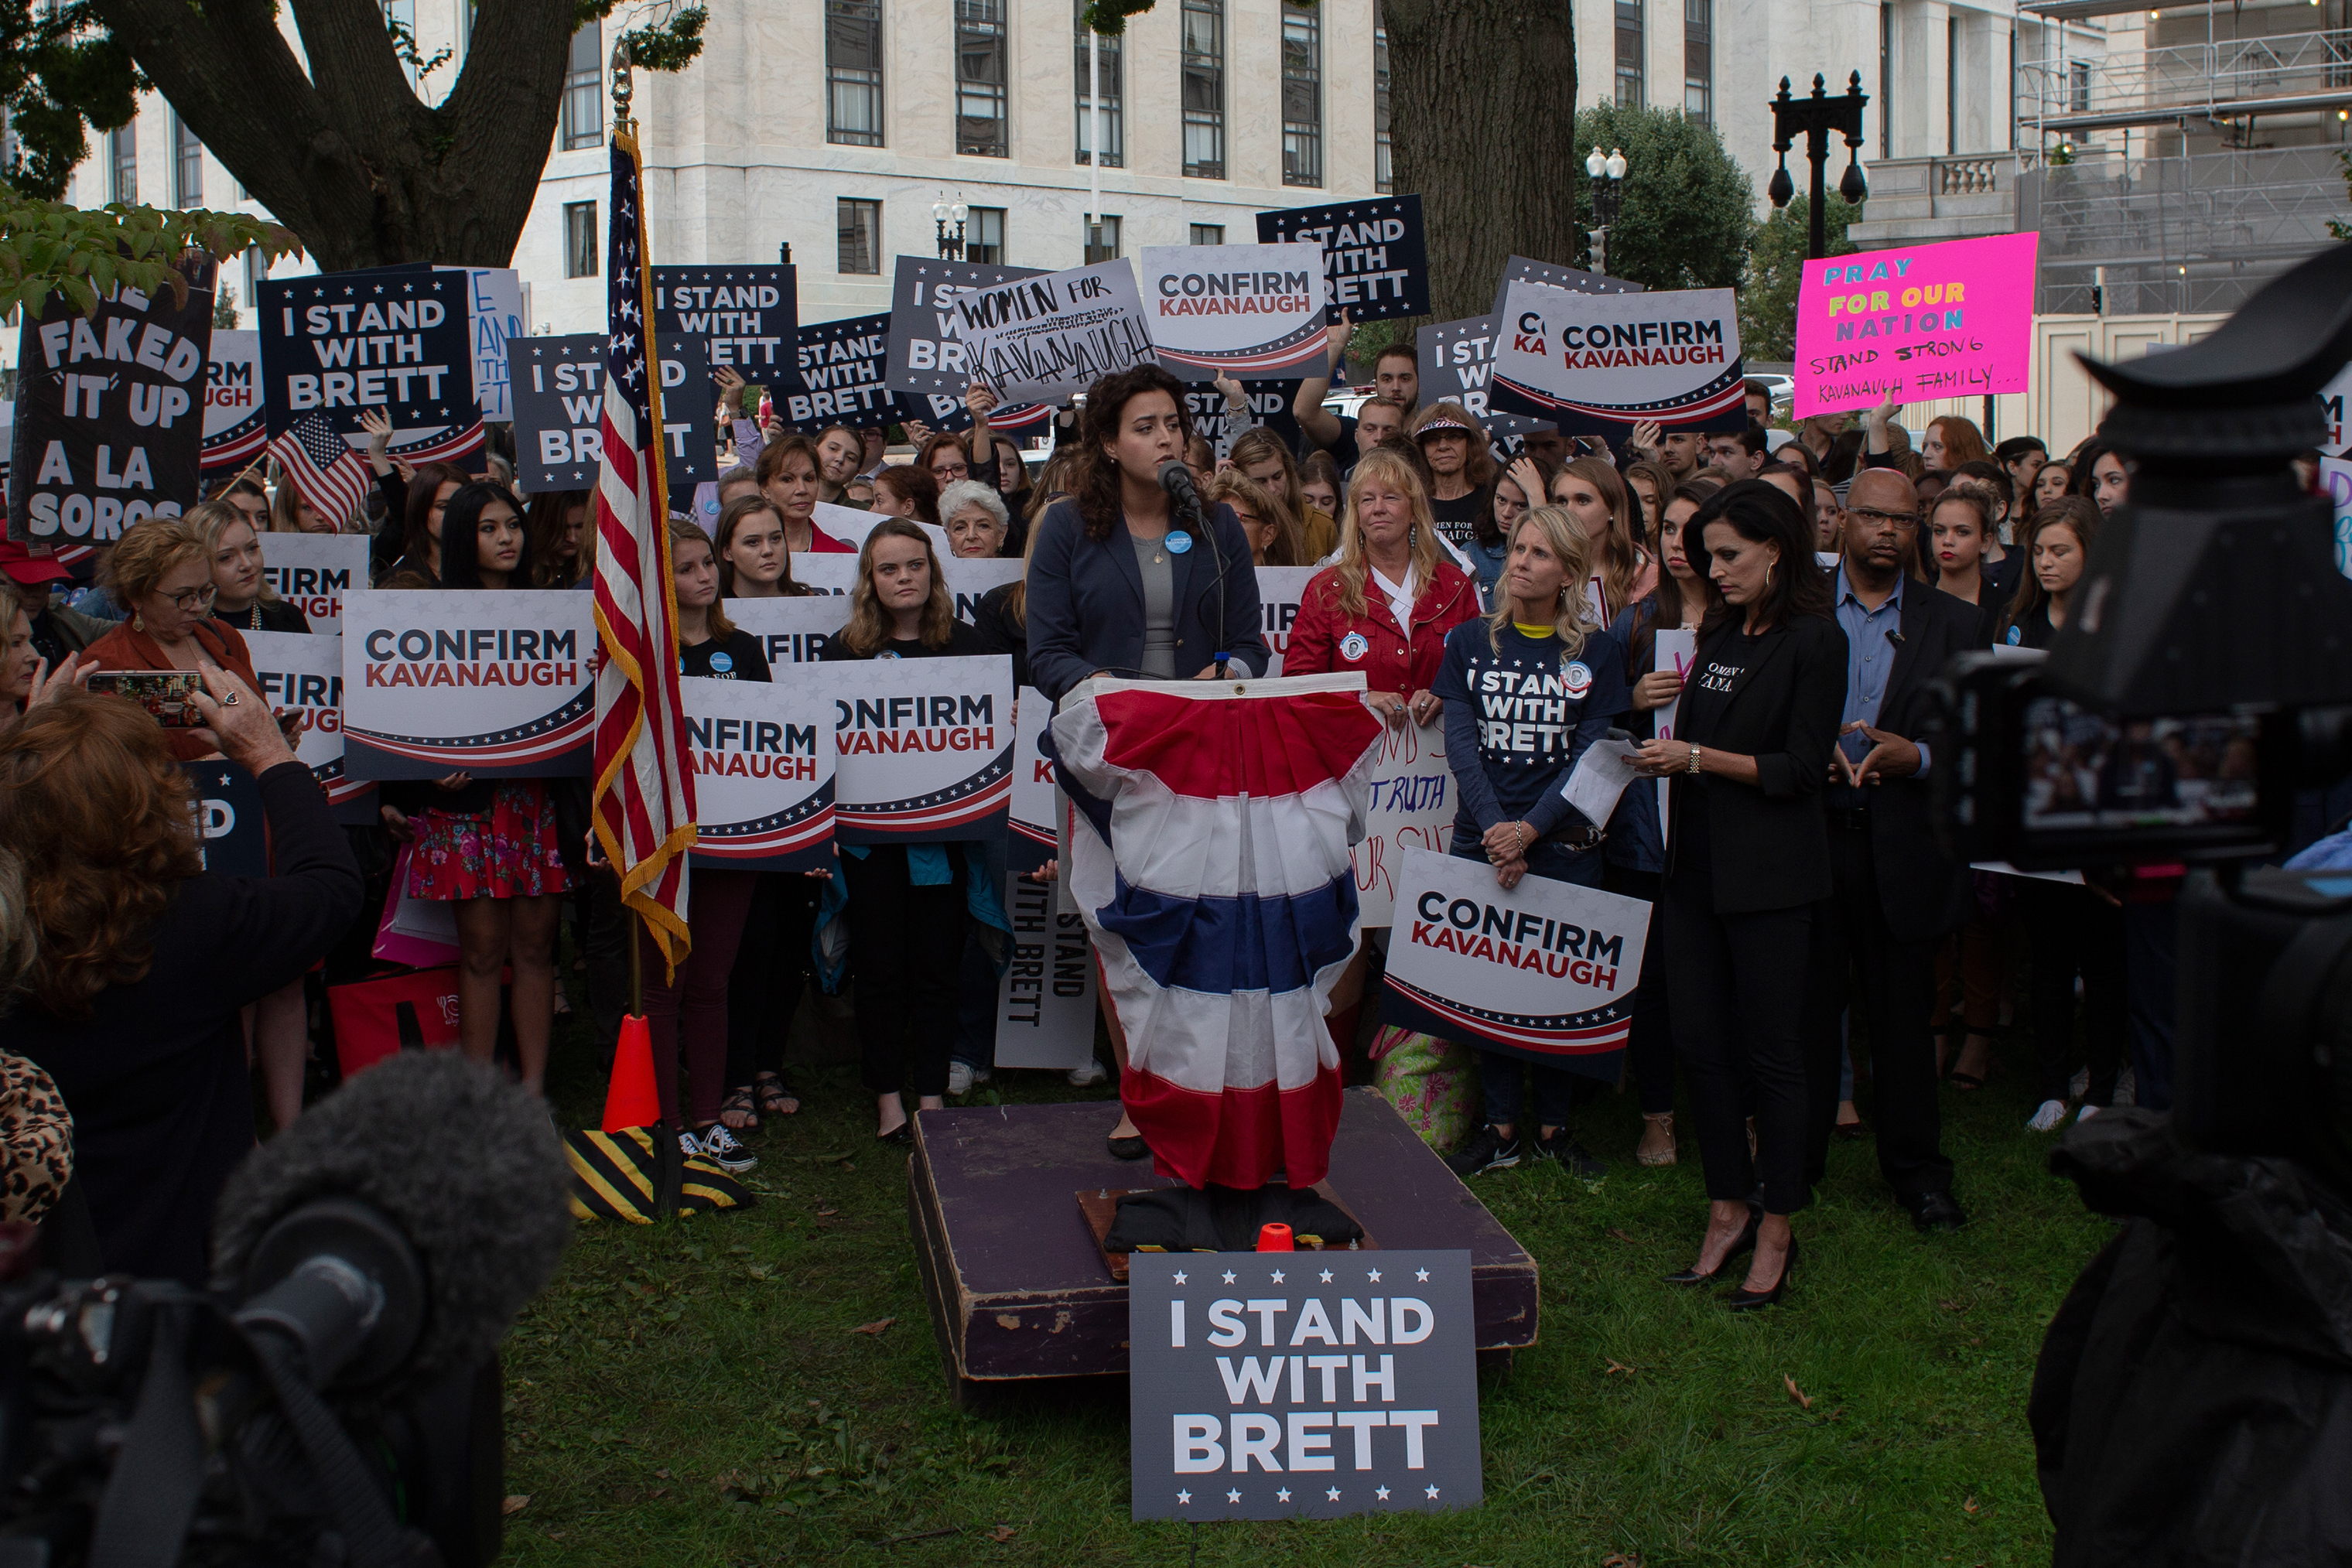 Demonstrators rally in support of the Senate confirmation of Judge Brett Kavanaugh on Capitol Hill on Sept. 27.